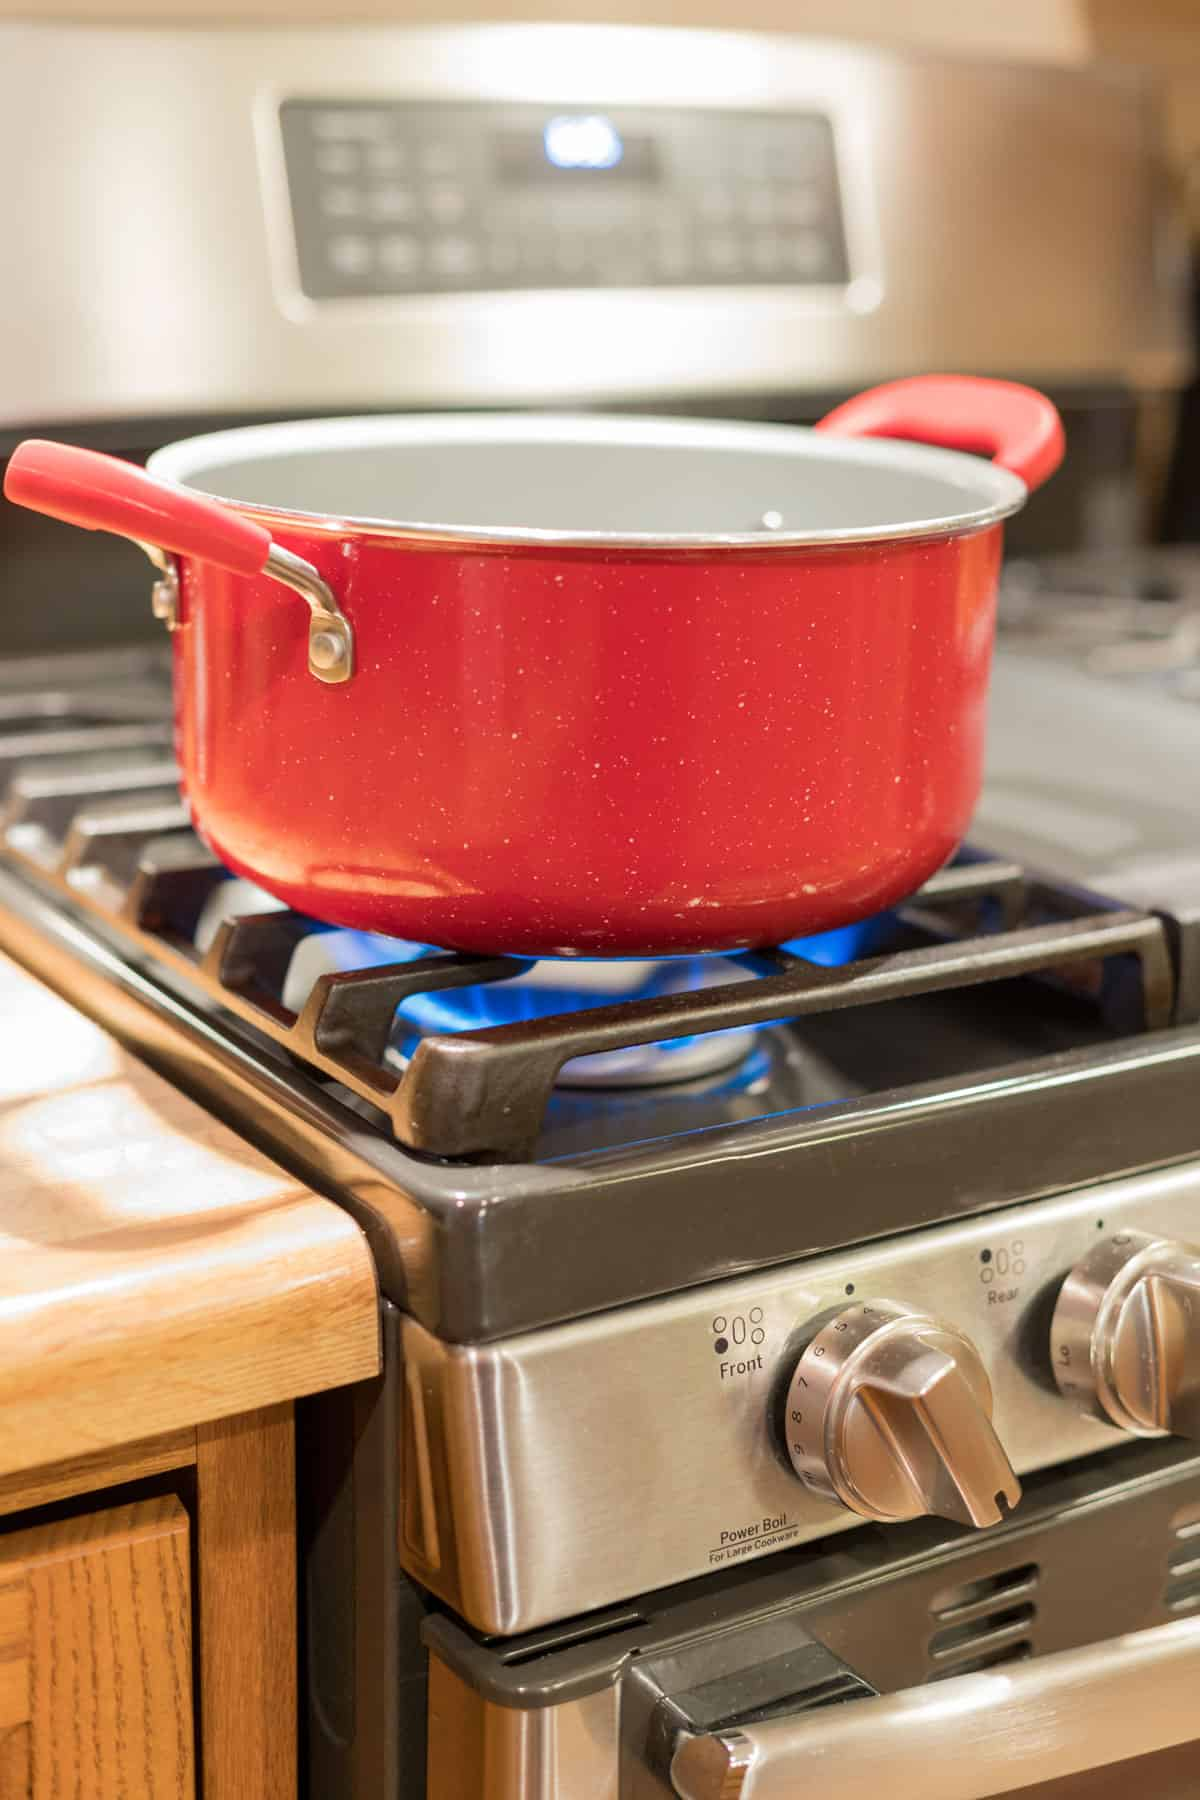 Red enamel pot over a flame on a gas range stove.